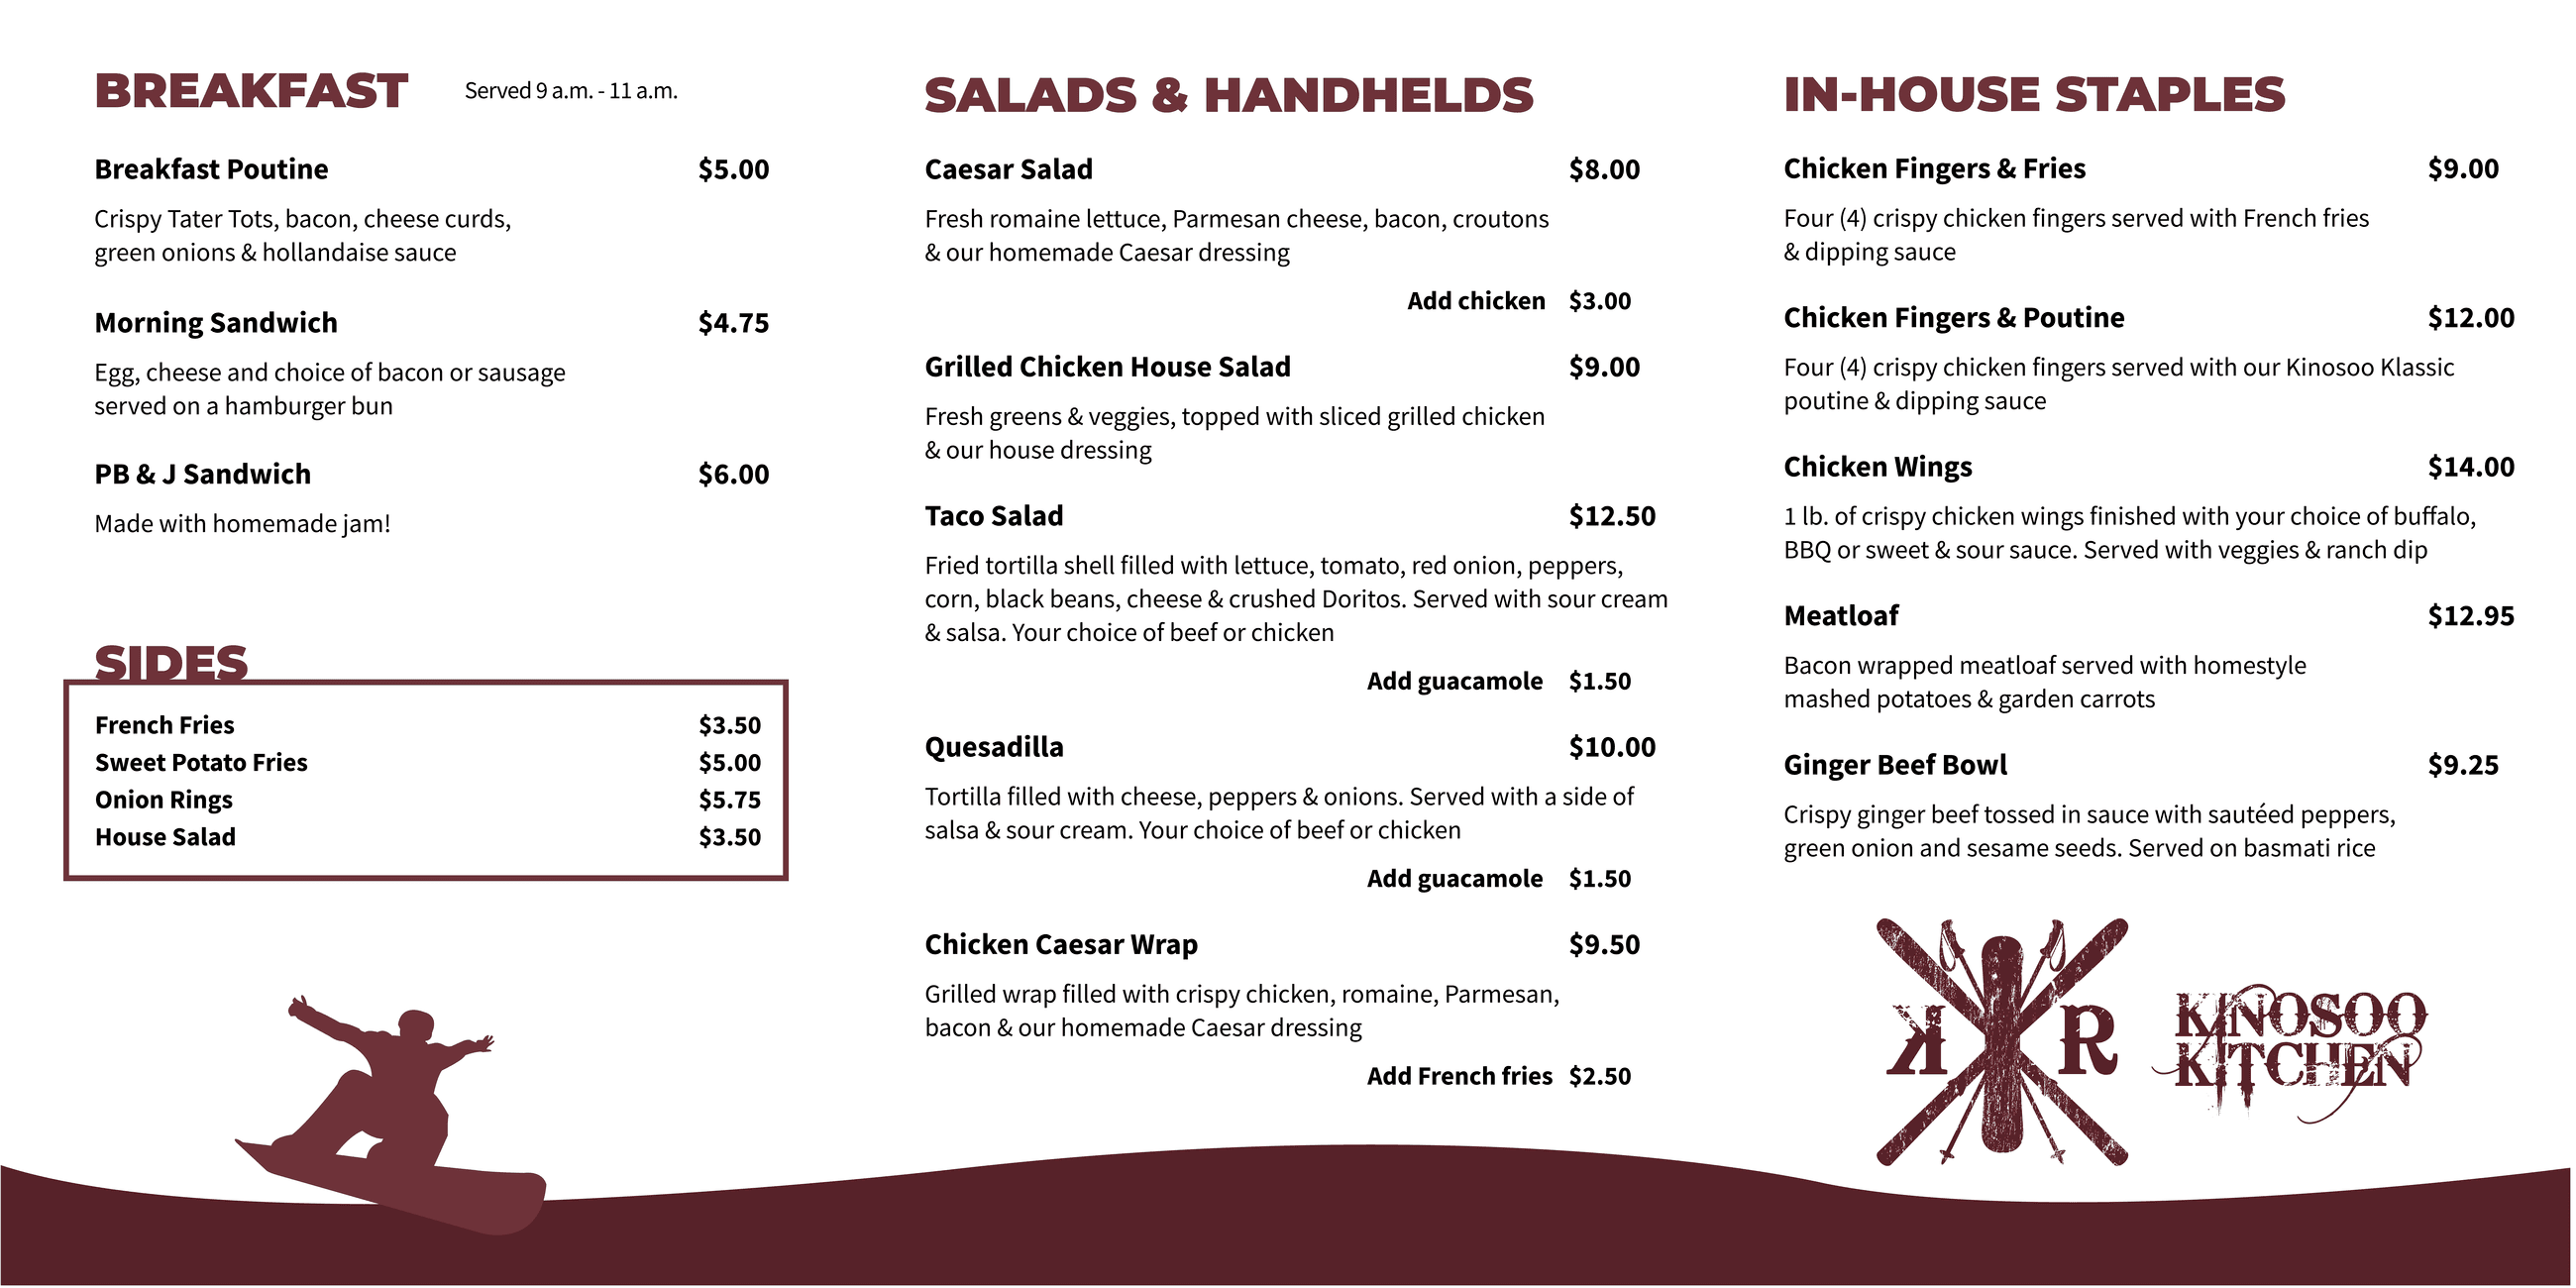 Kinosoo Menu Boards 2020 01